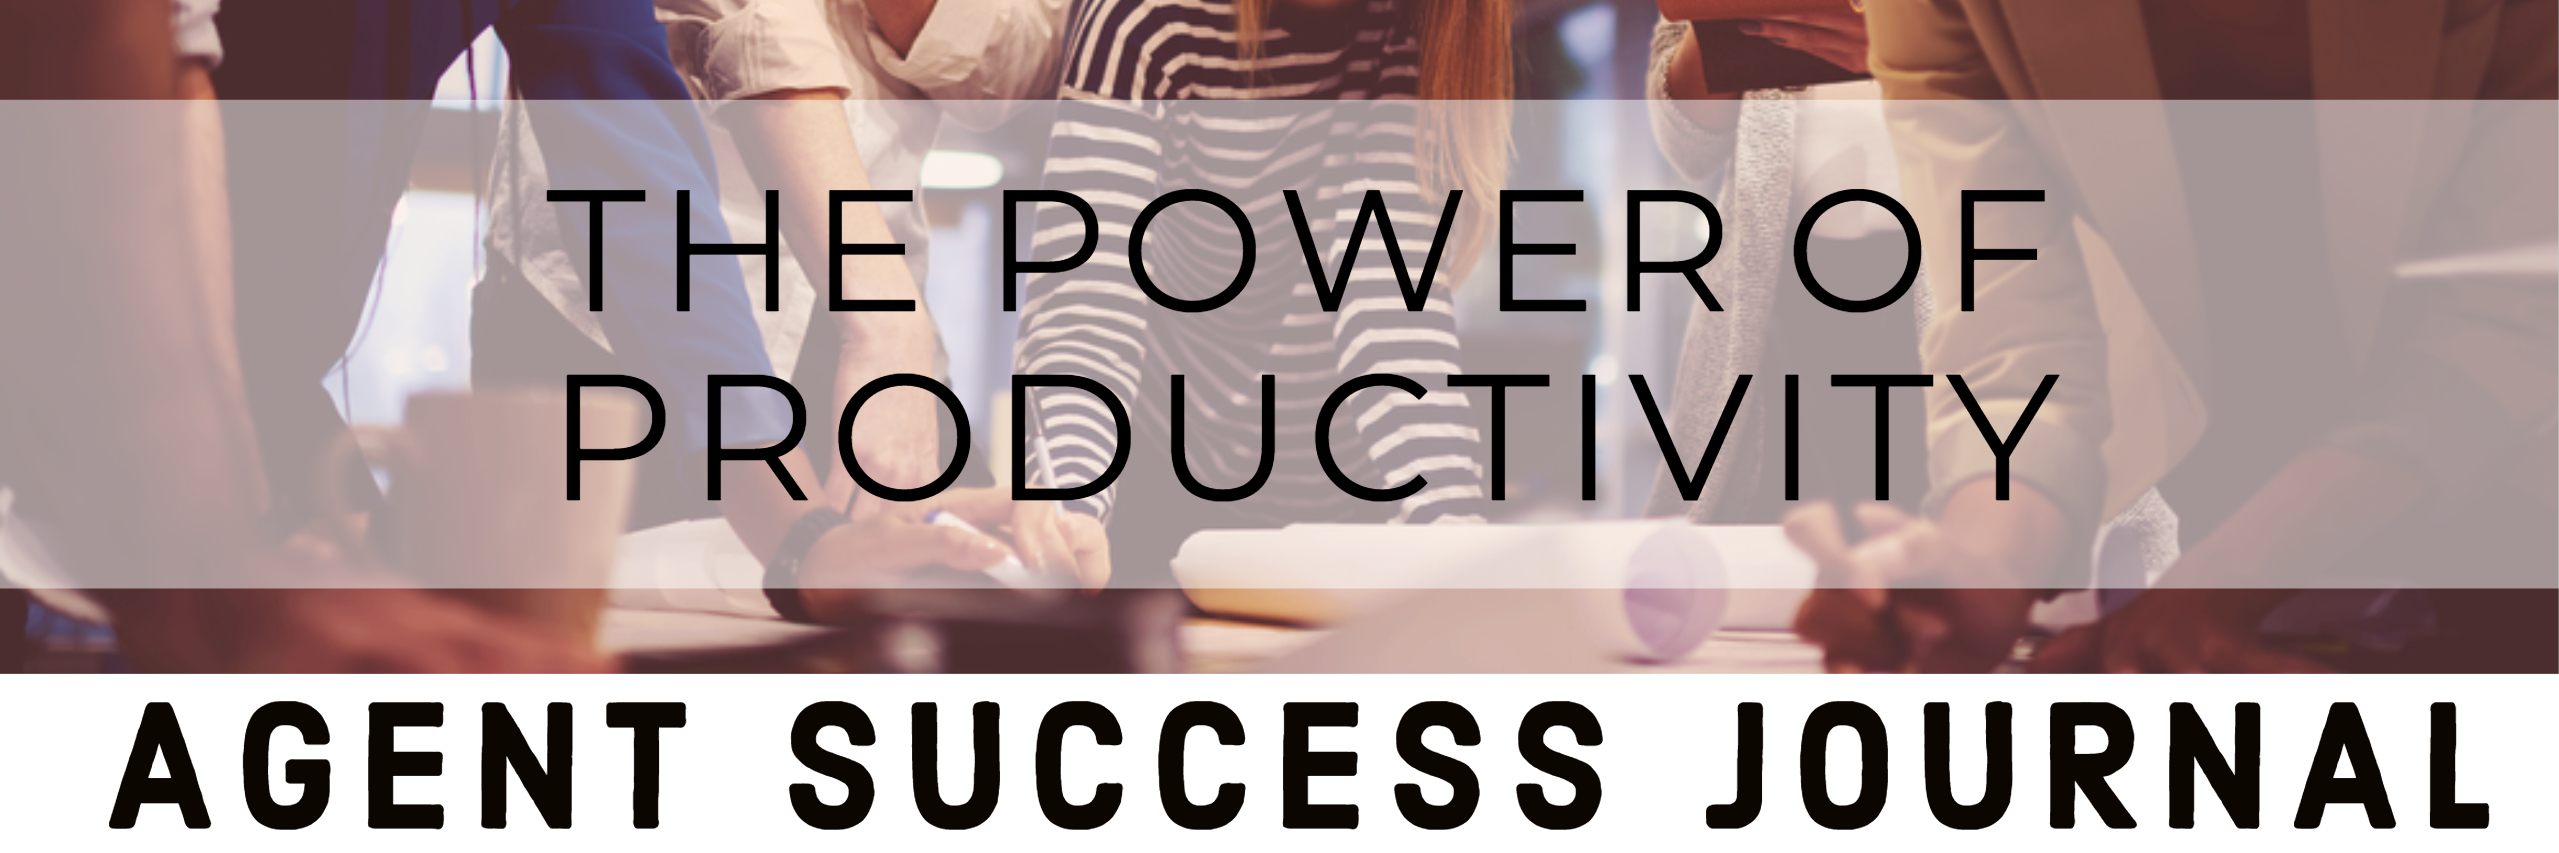 the power of productivity best real estate agent in California best real estate agent in Los Angeles Paul Argueta best real estate agent